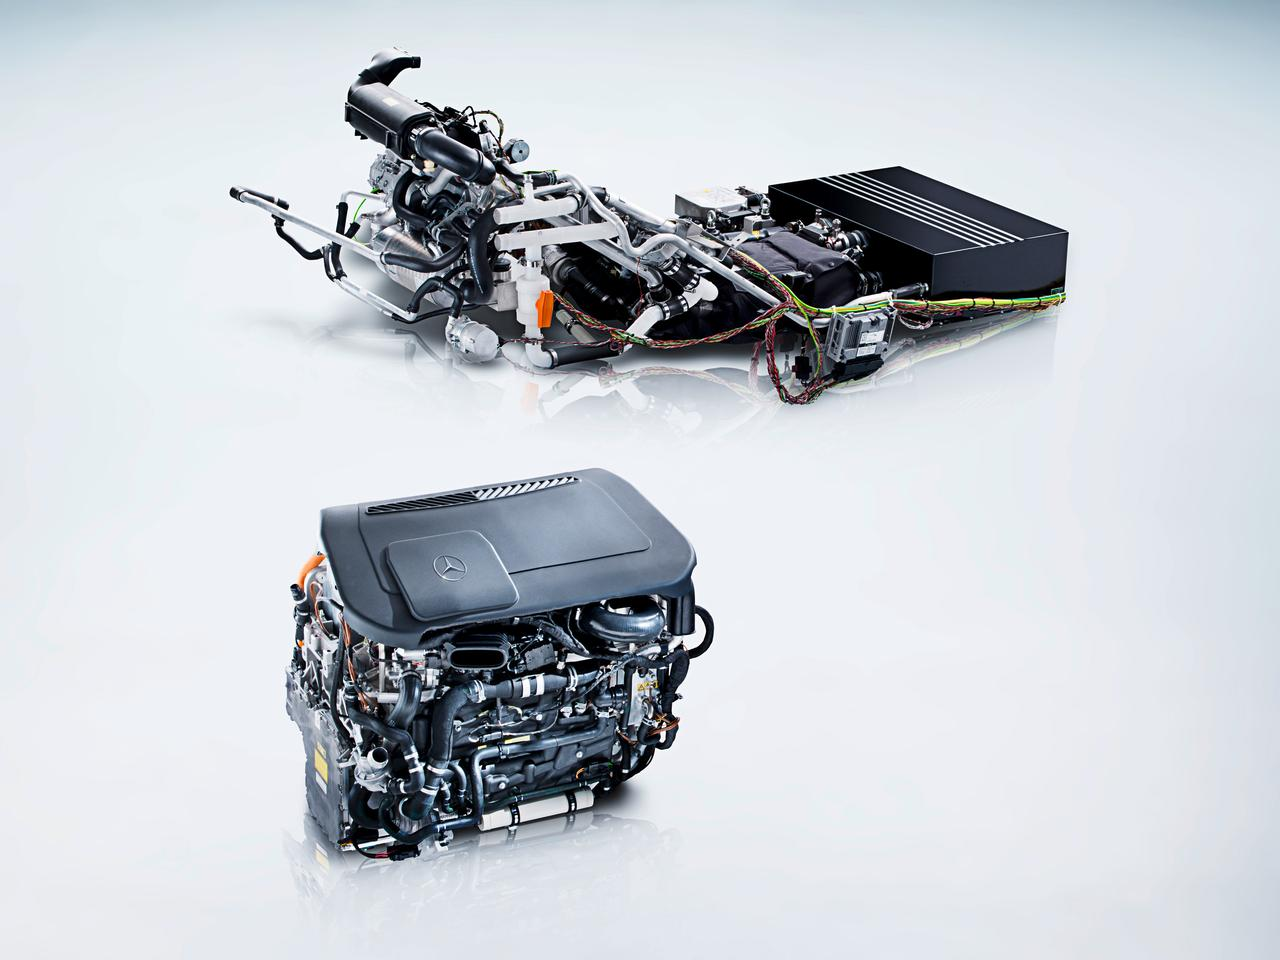 The fuel cell system of the Mercedes-Benz B-Class F-CELL (above) compared to the current development status